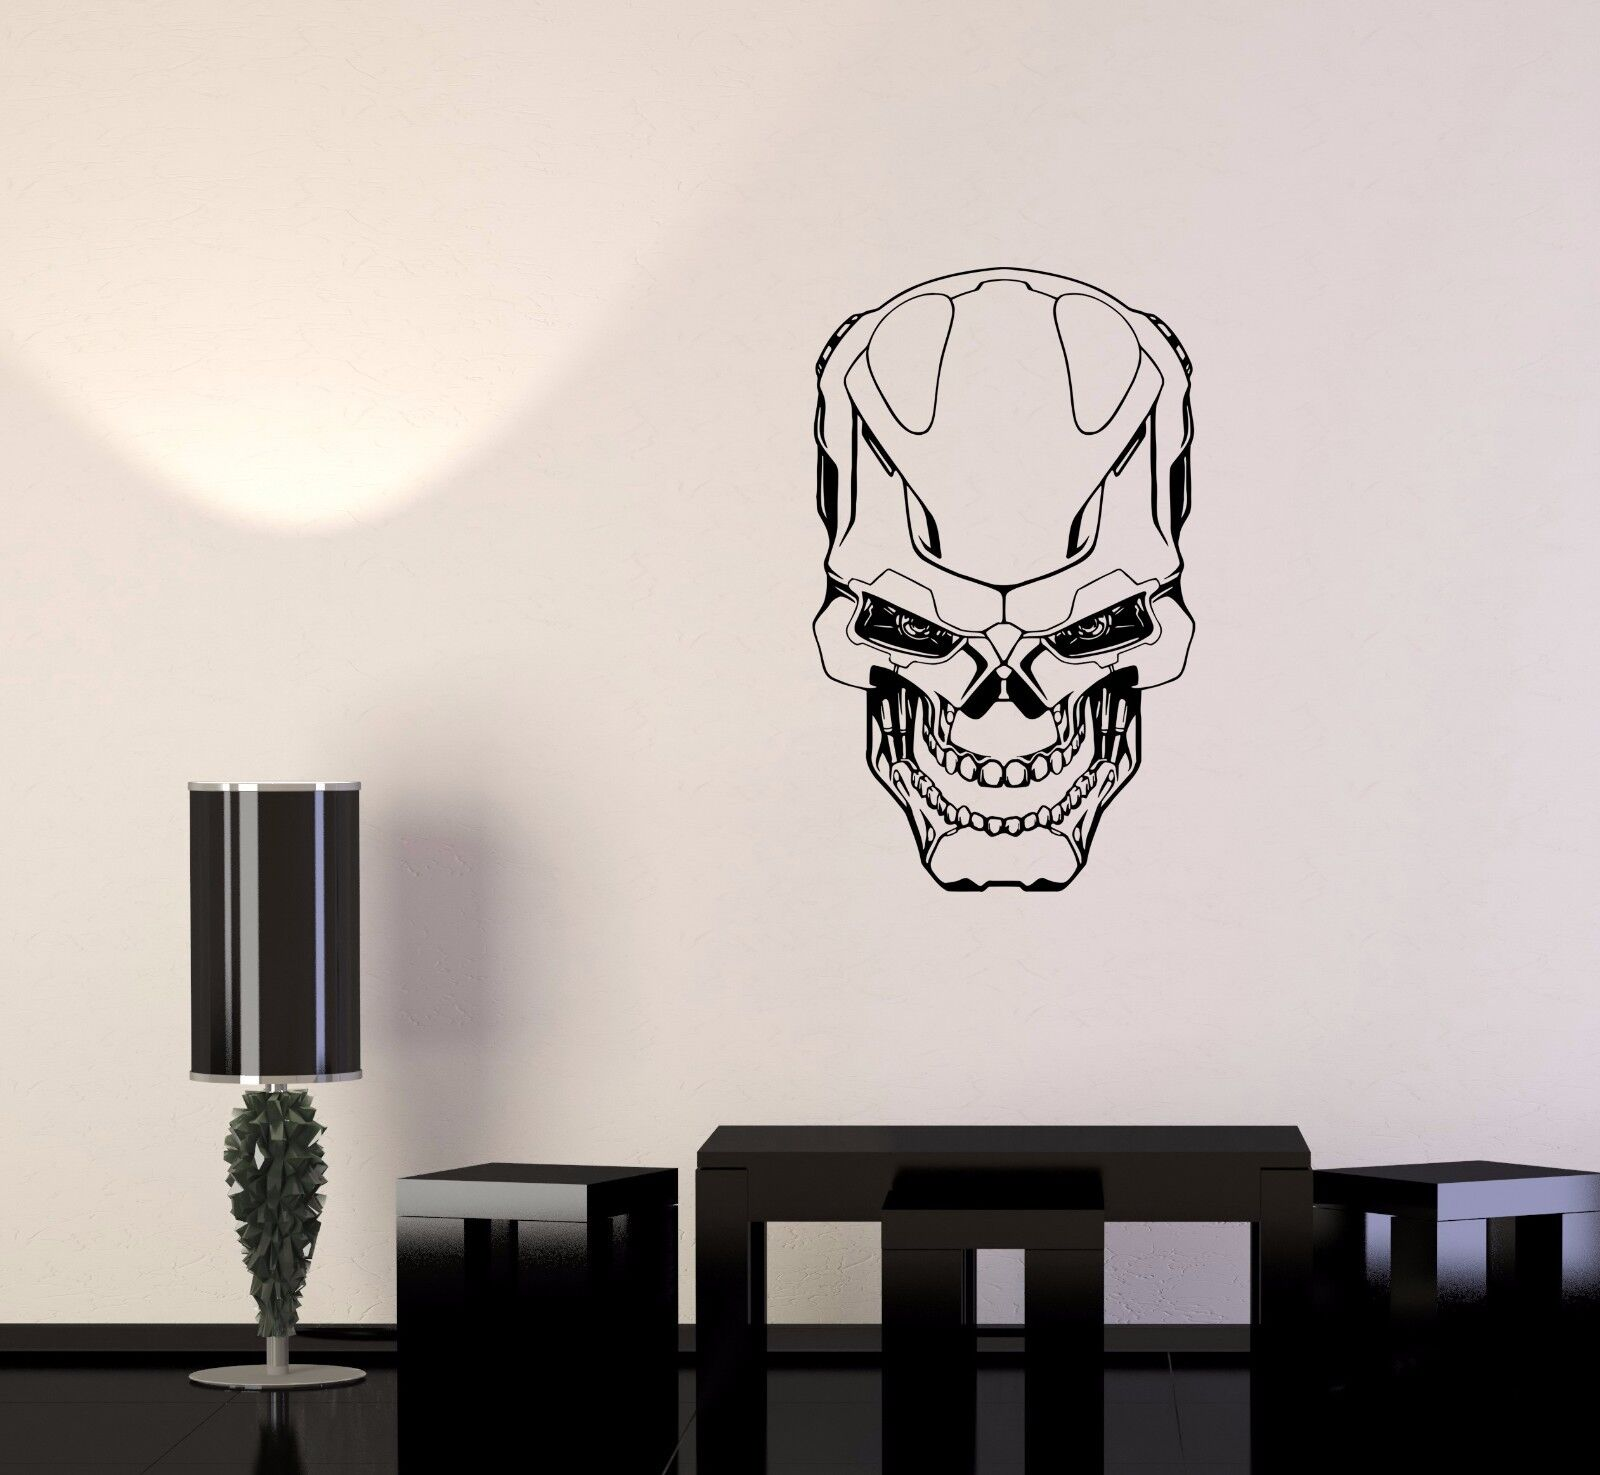 Wand Decal Robot Skull Iron Weapons Decor Military Danger Vinyl Decal (ed532)